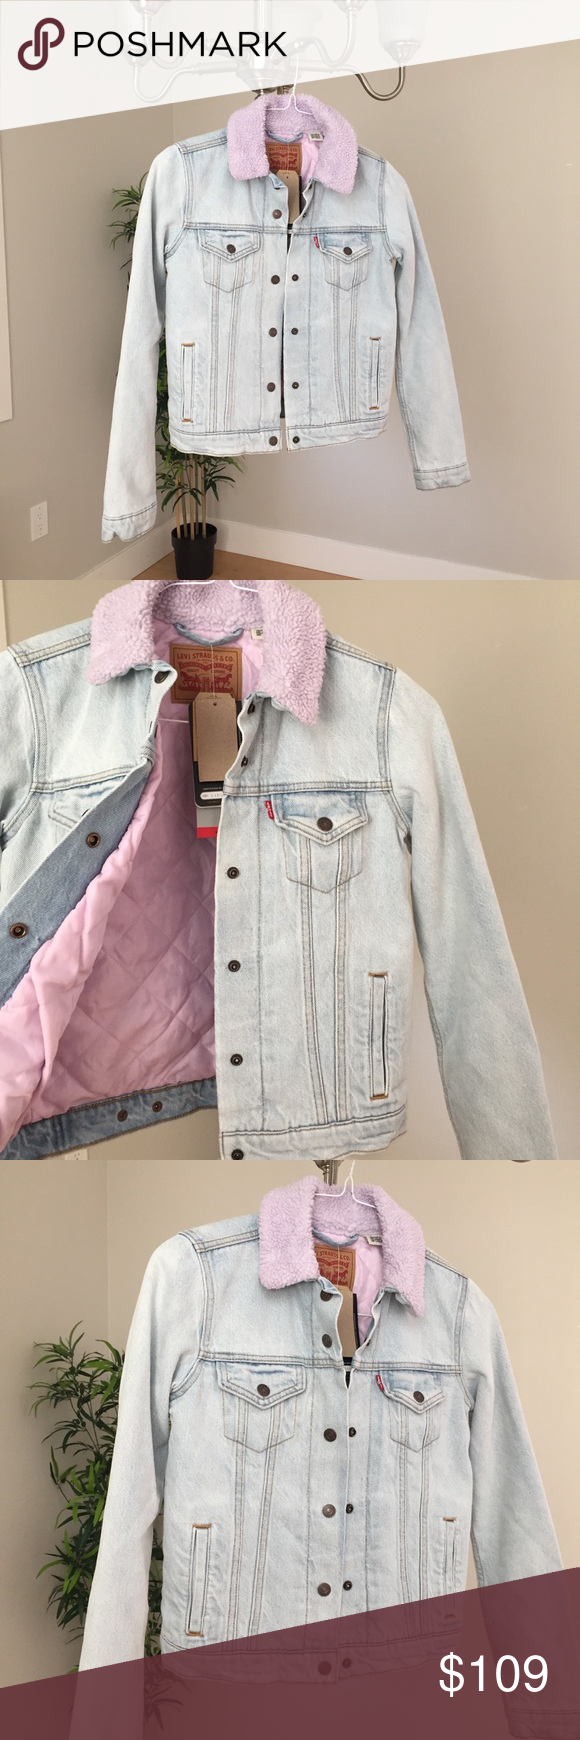 Rare Nwt Levi S Jean Jacket Rare New With Tags Levi S Performance Insulated Jean Jacket Lavender Purple Lining W Insulated Jeans Jean Jacket Light Wash Denim [ 1740 x 580 Pixel ]